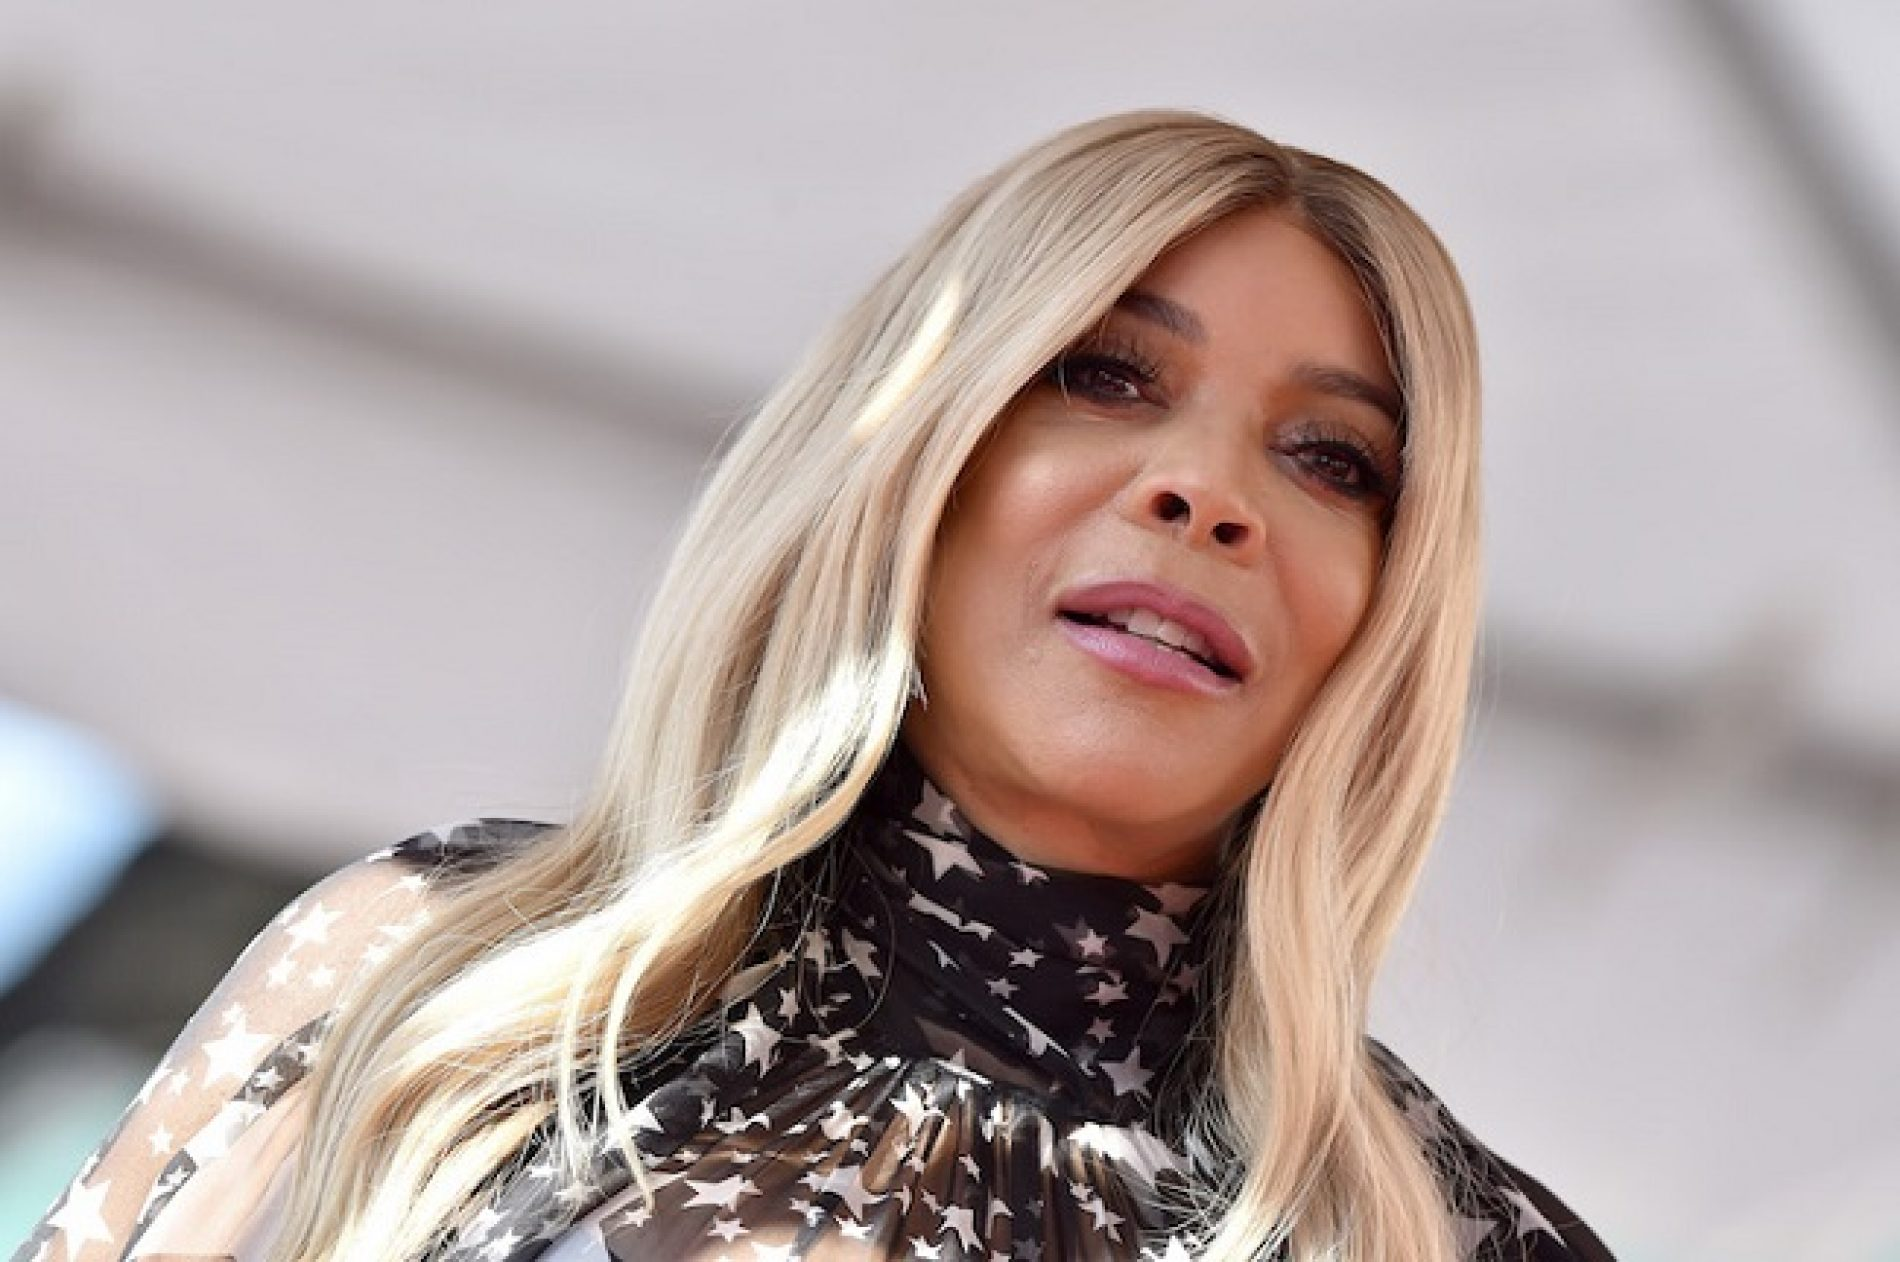 """I Am Not Lesbian. I Like Men. And I Like The D."" Wendy Williams shoots down news report that she is gay"